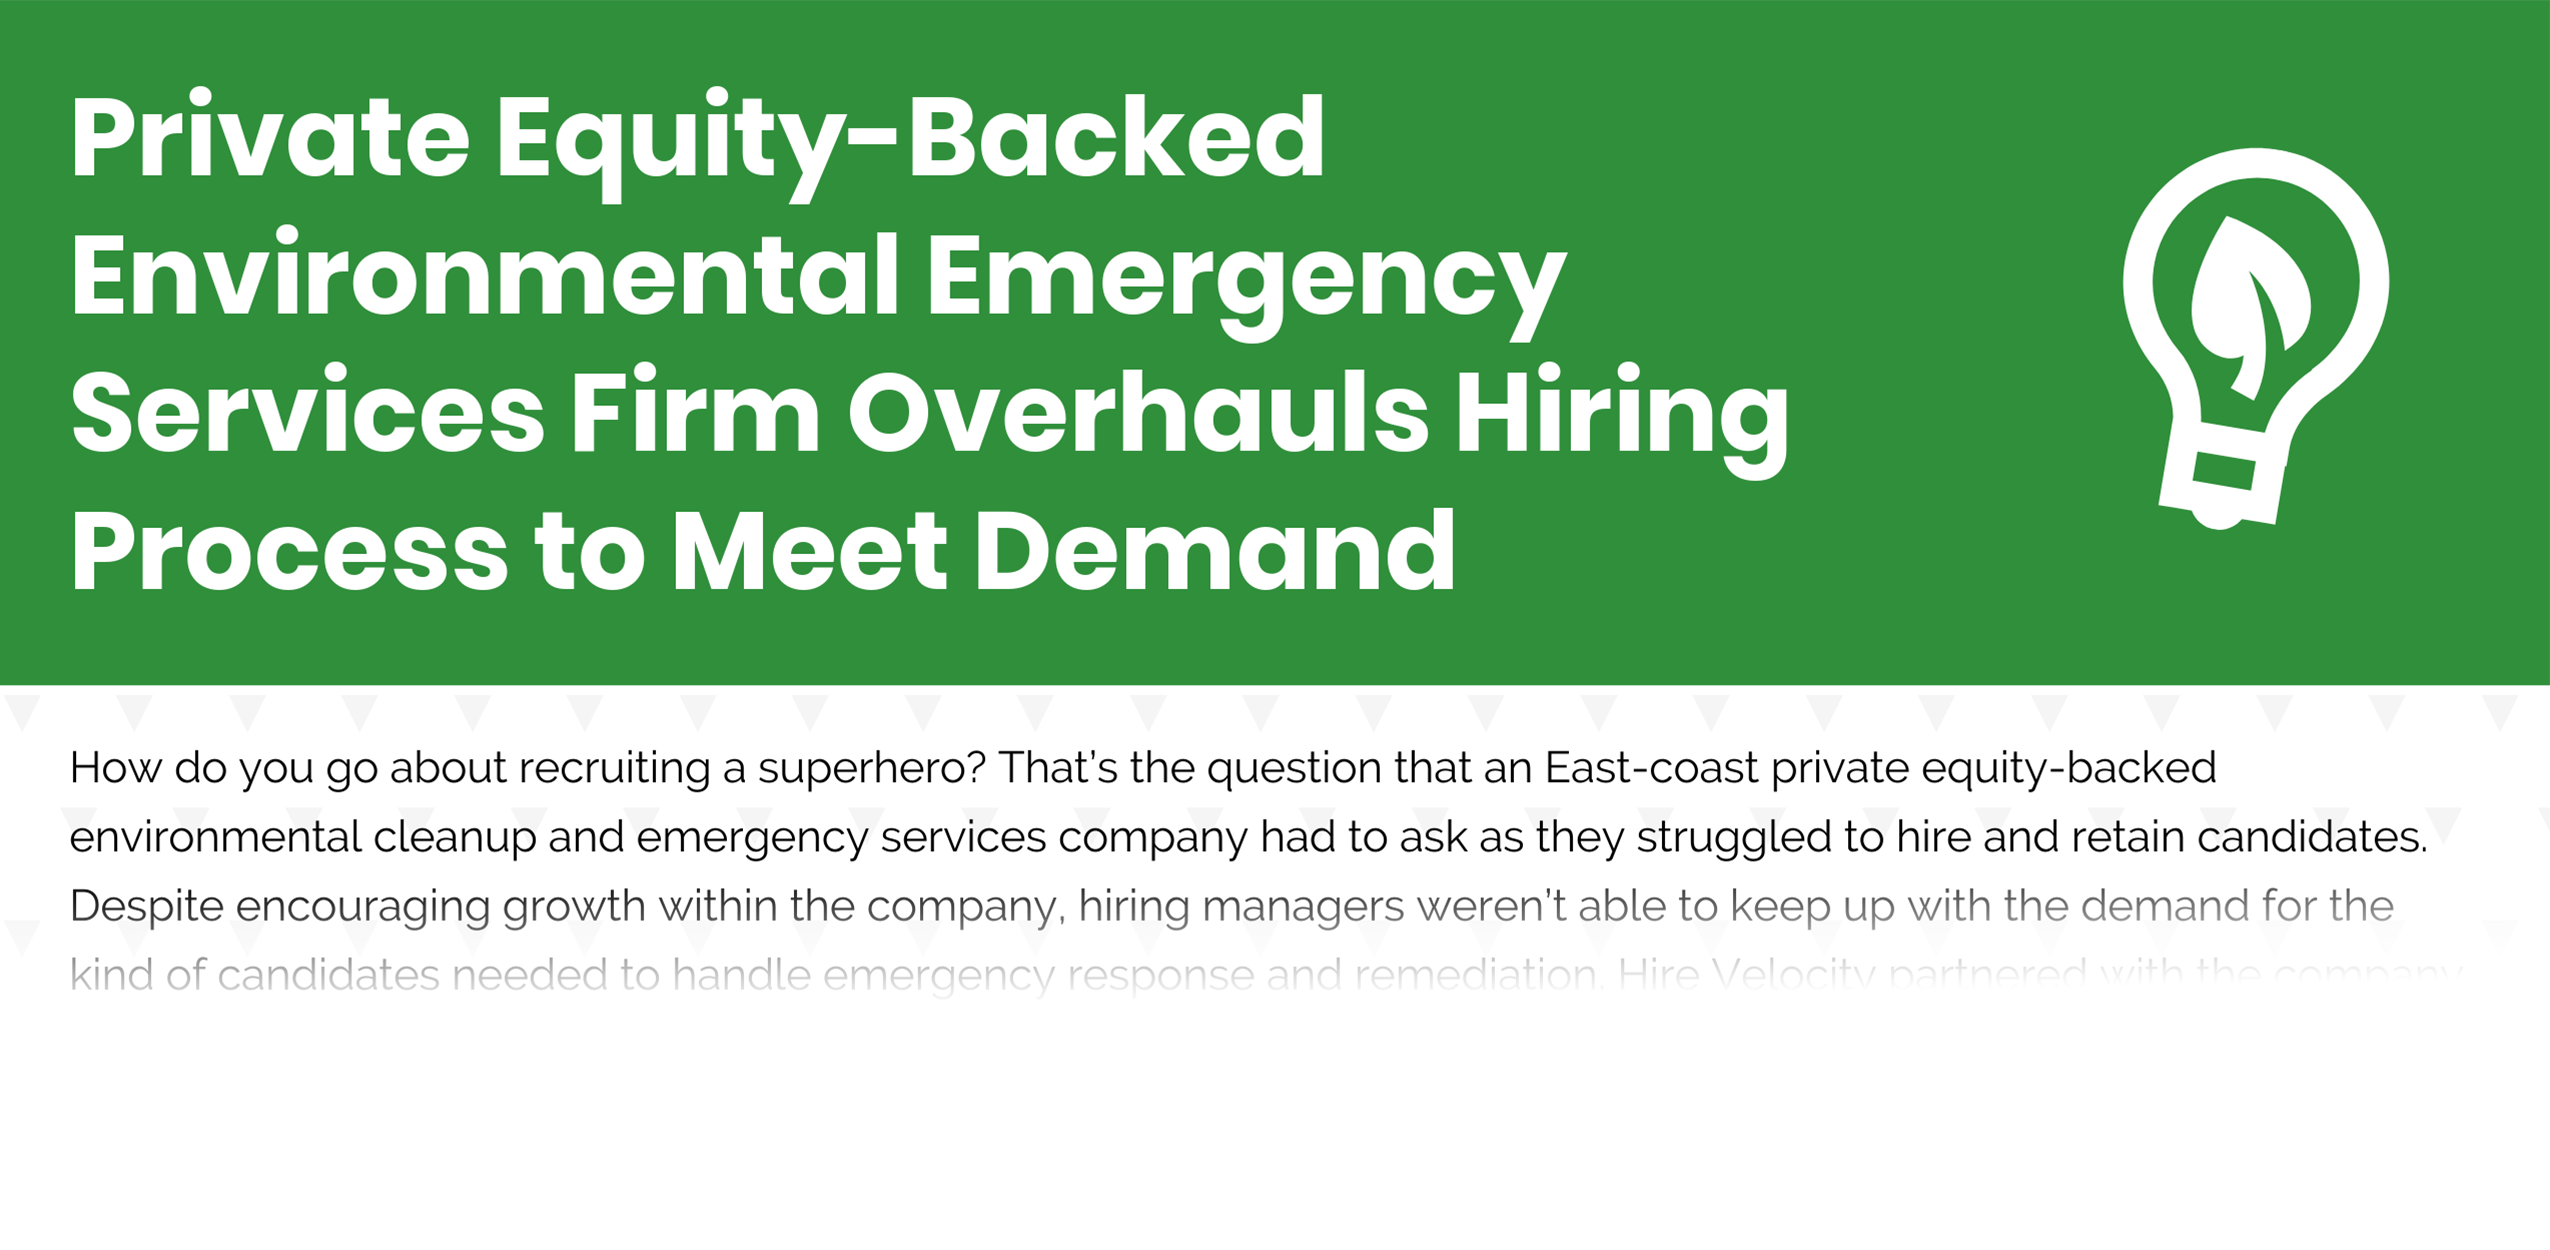 Private Equity-Backed Environmental Emergency Services Firm - Case Study